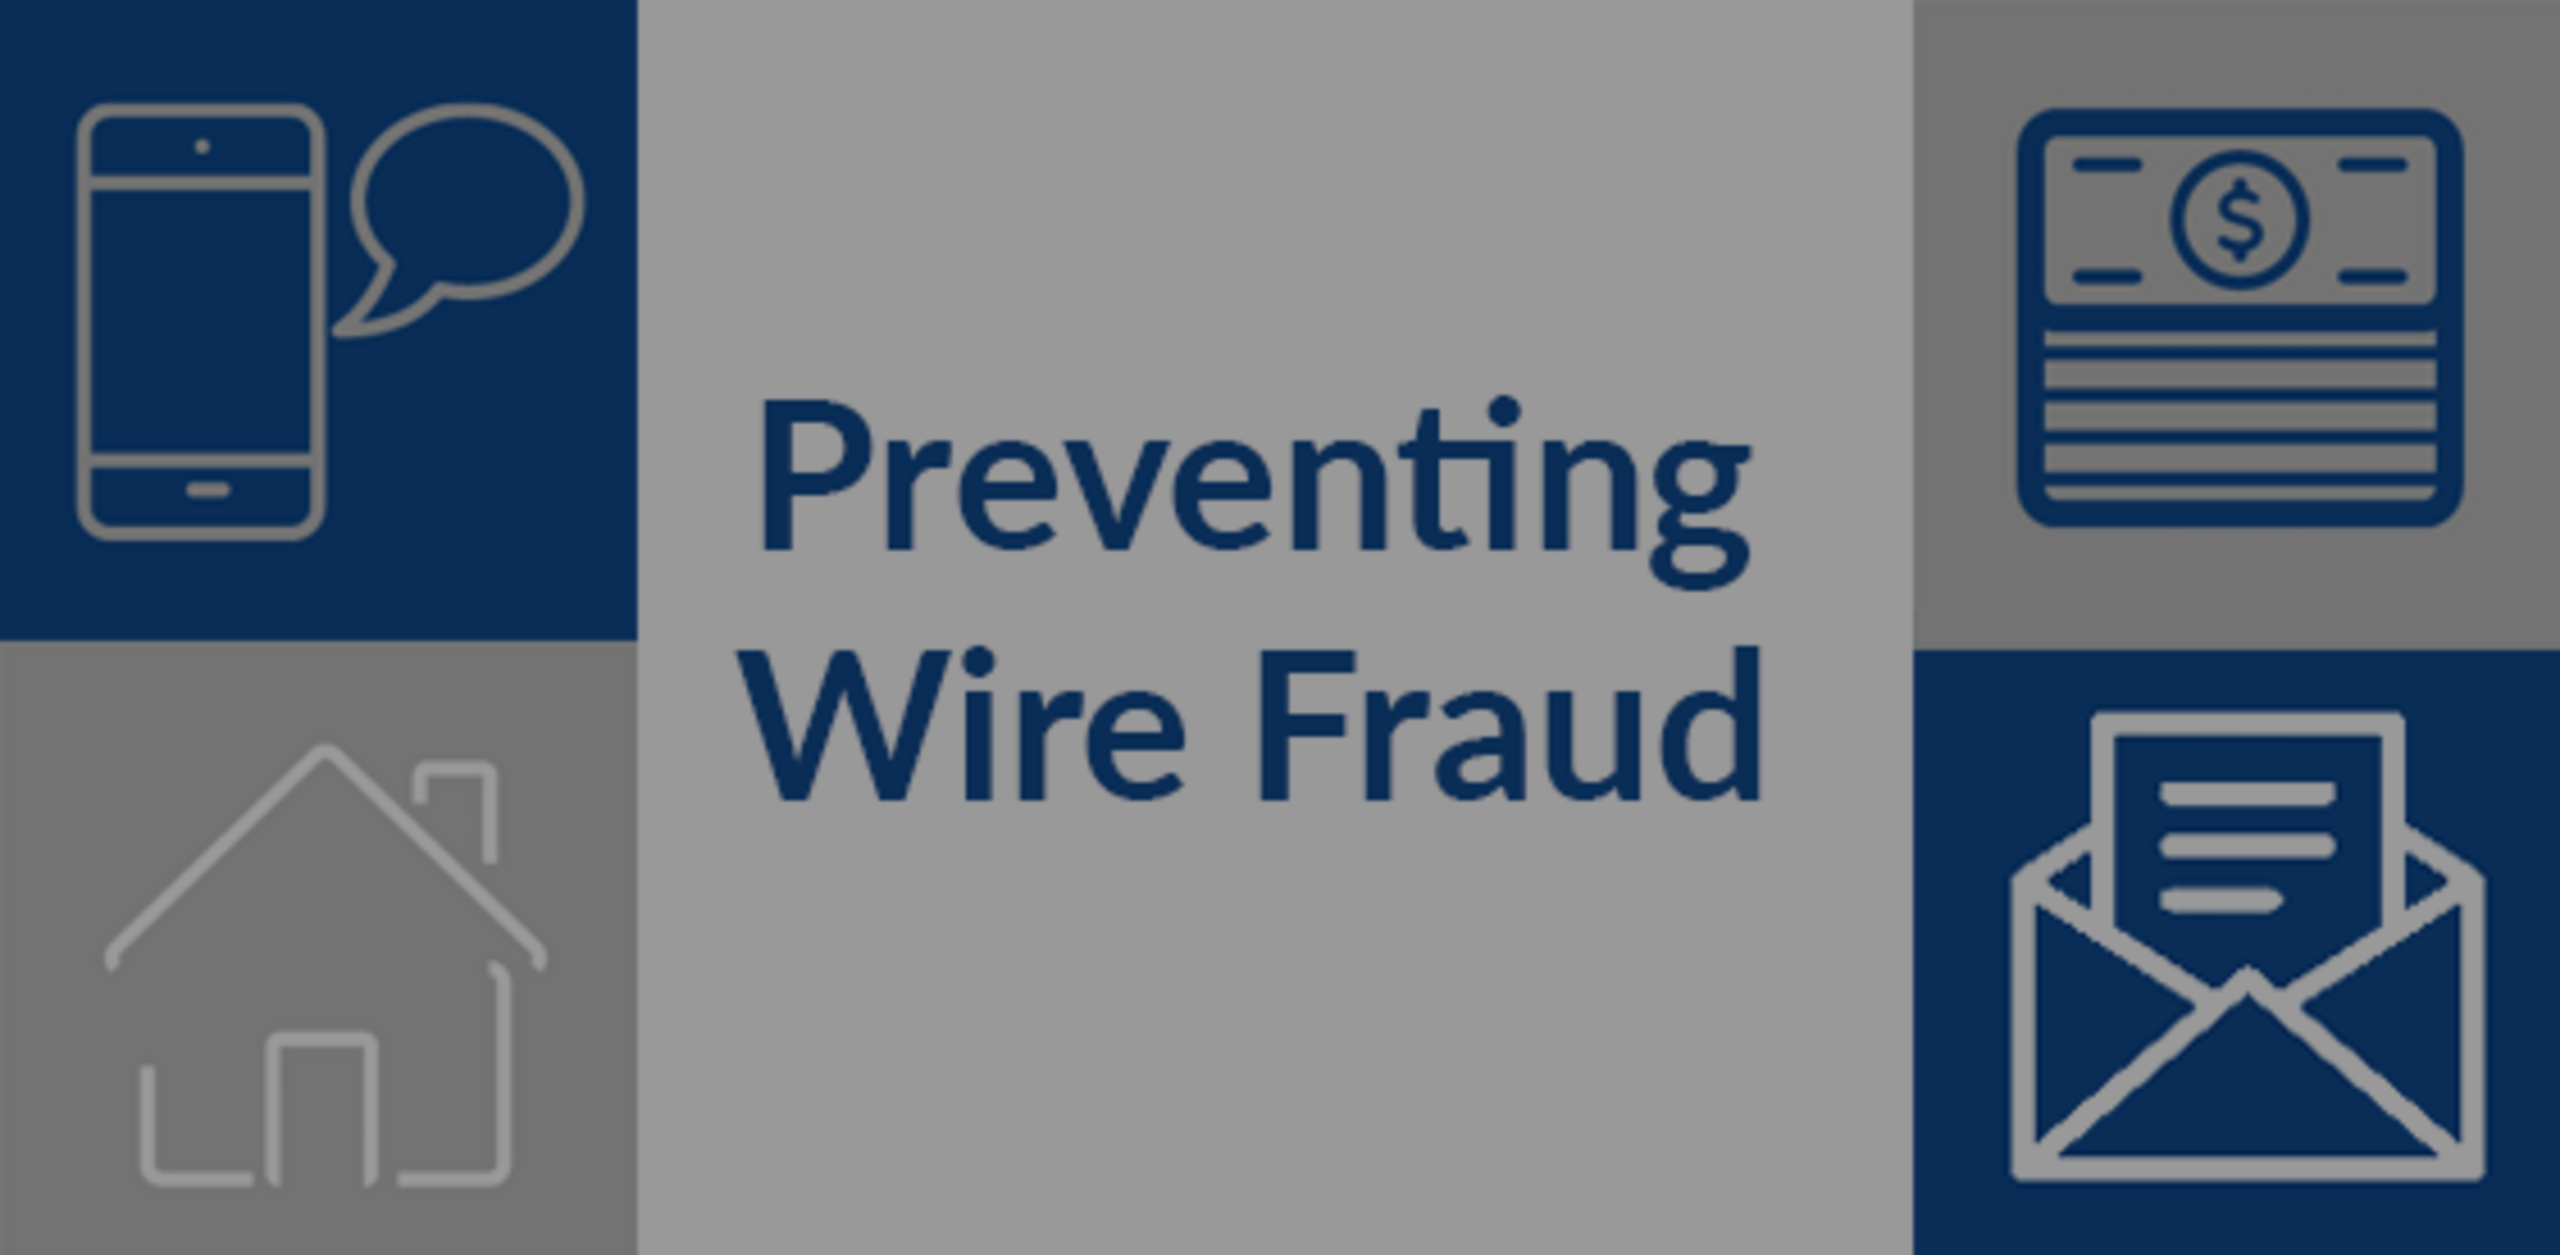 Wire Fraud Warning!!!!